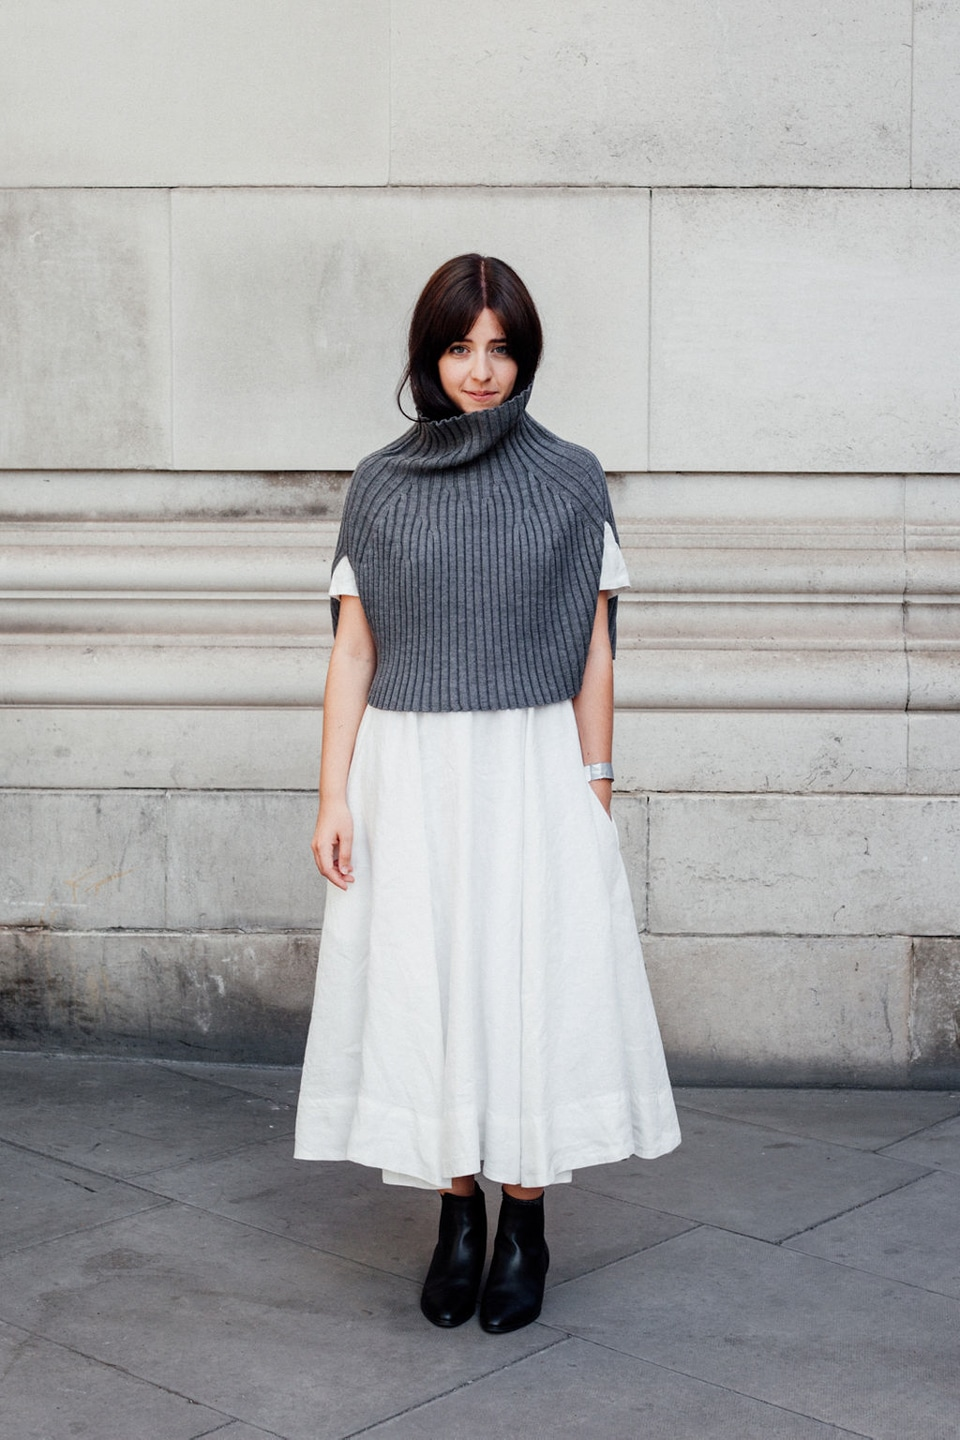 Besma wears white dress with grey pullover